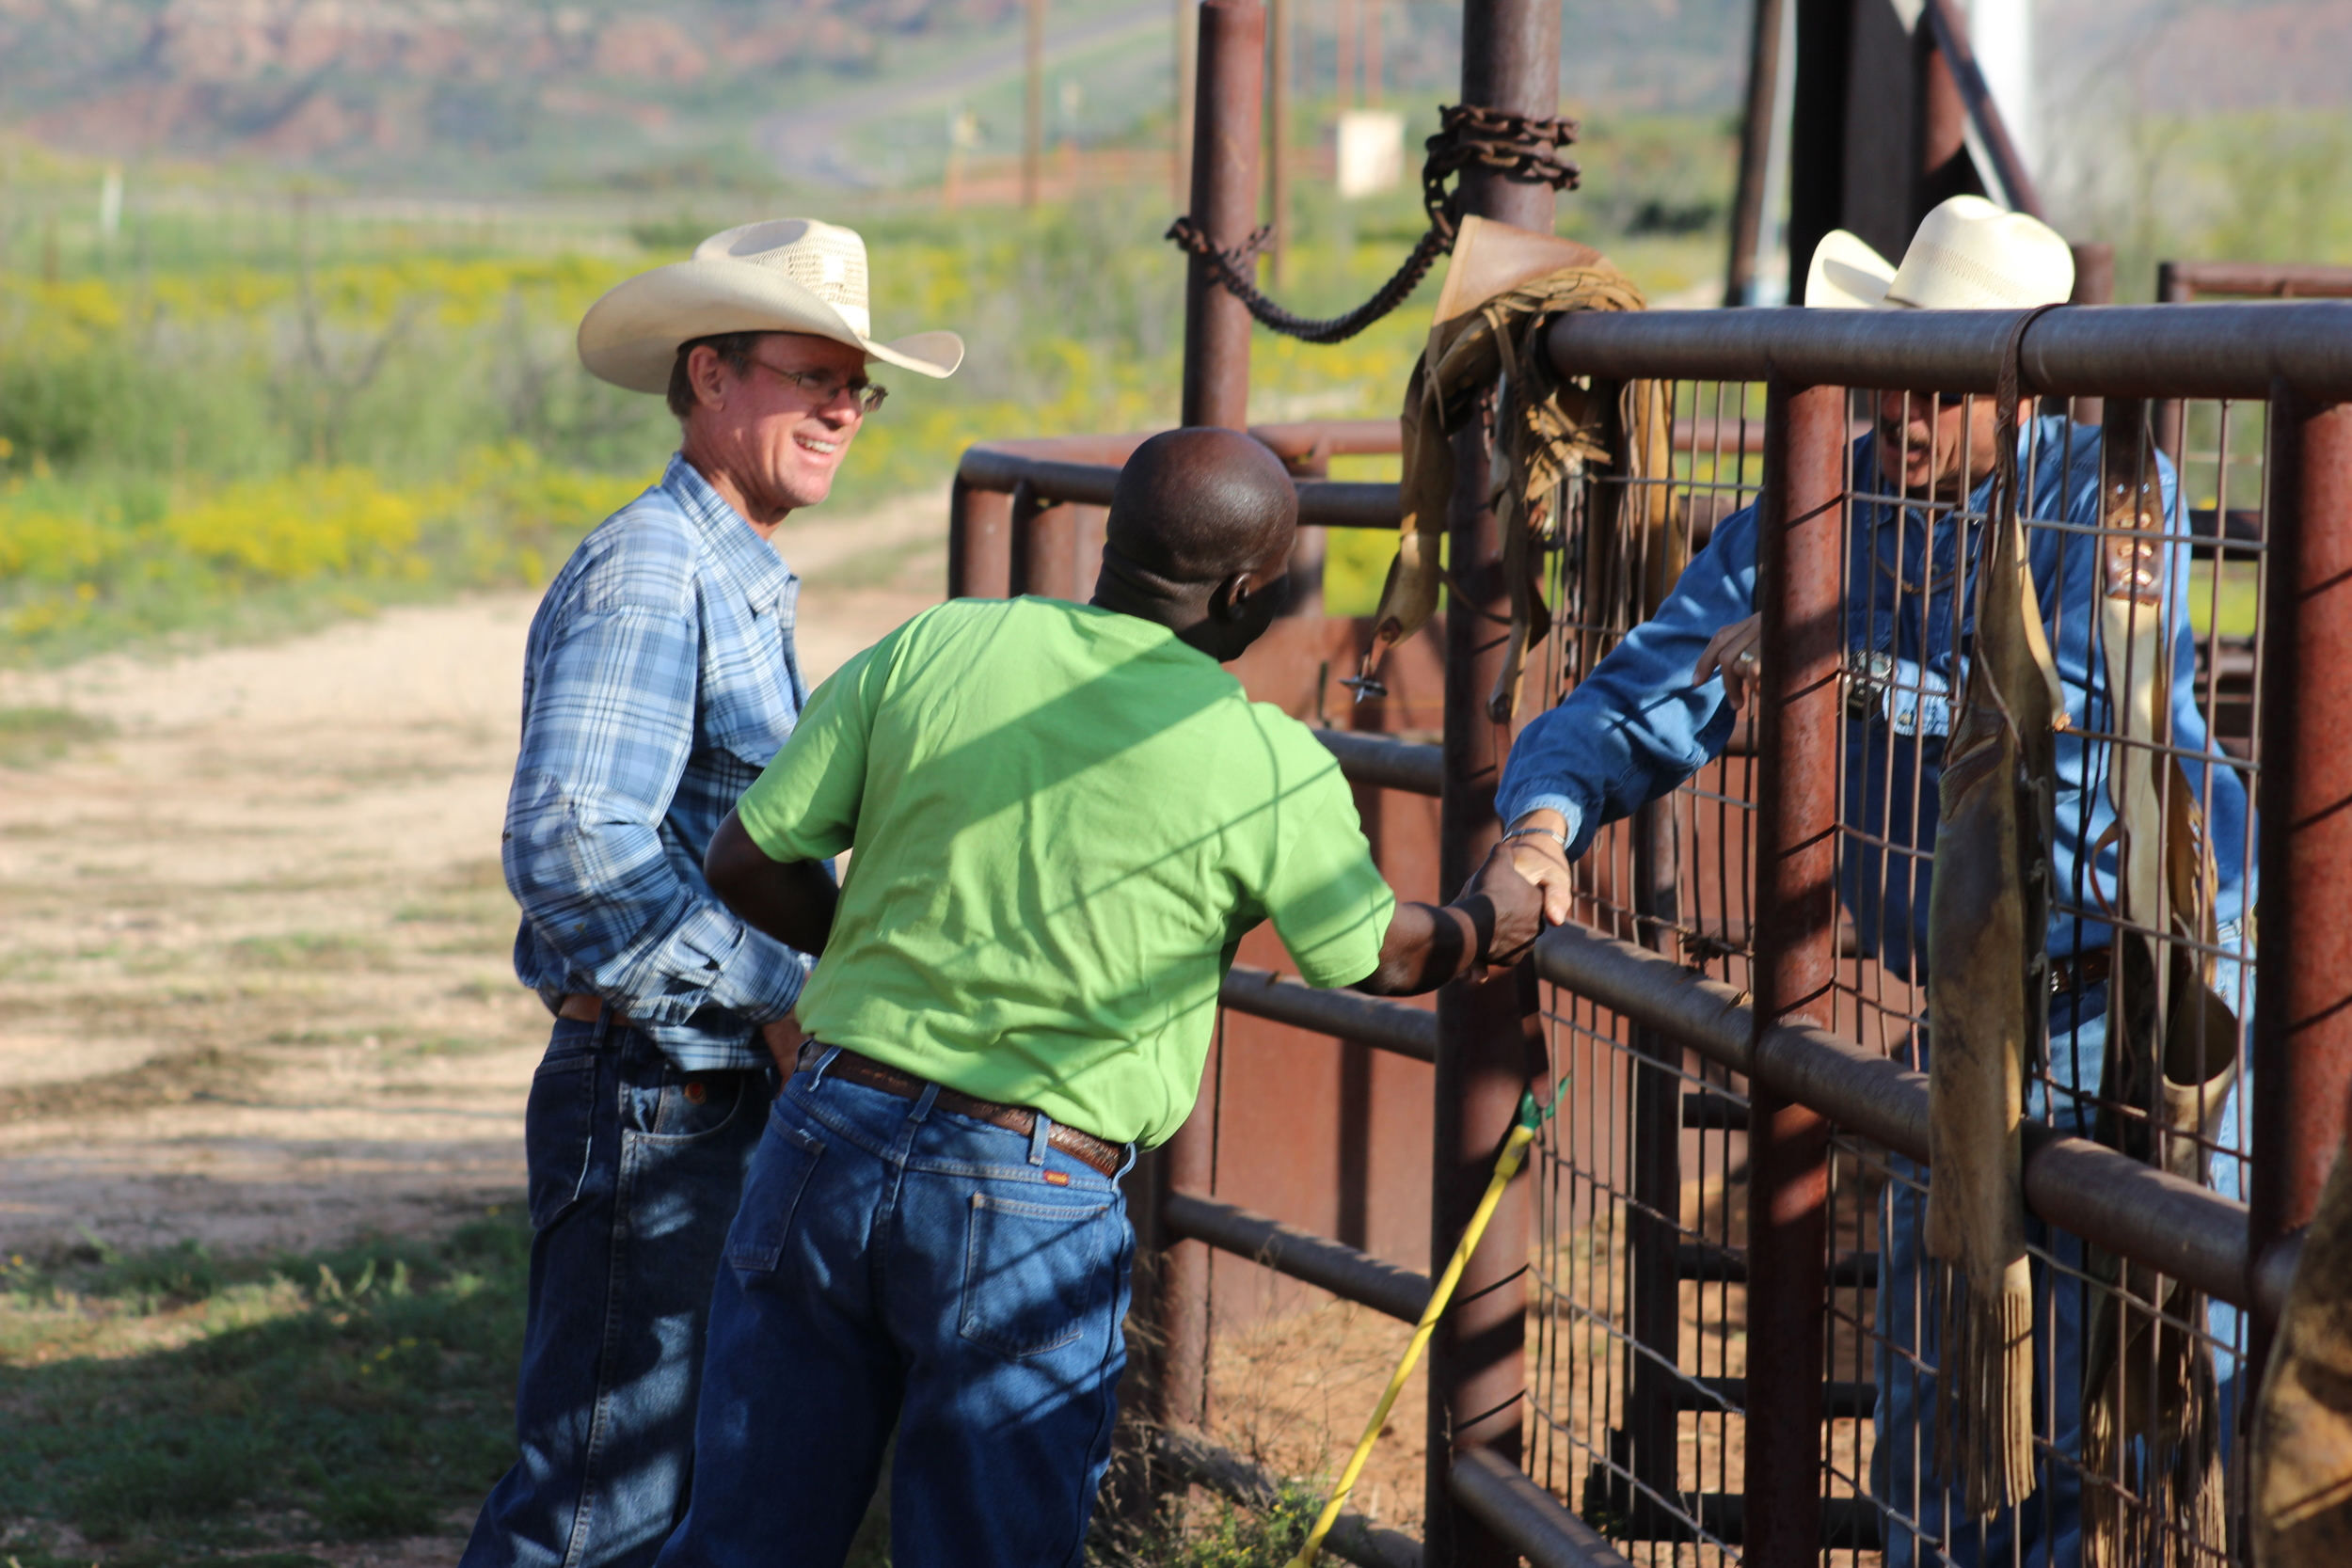 Drew showing Pastor Phiri around his ranch in Post, Texas.